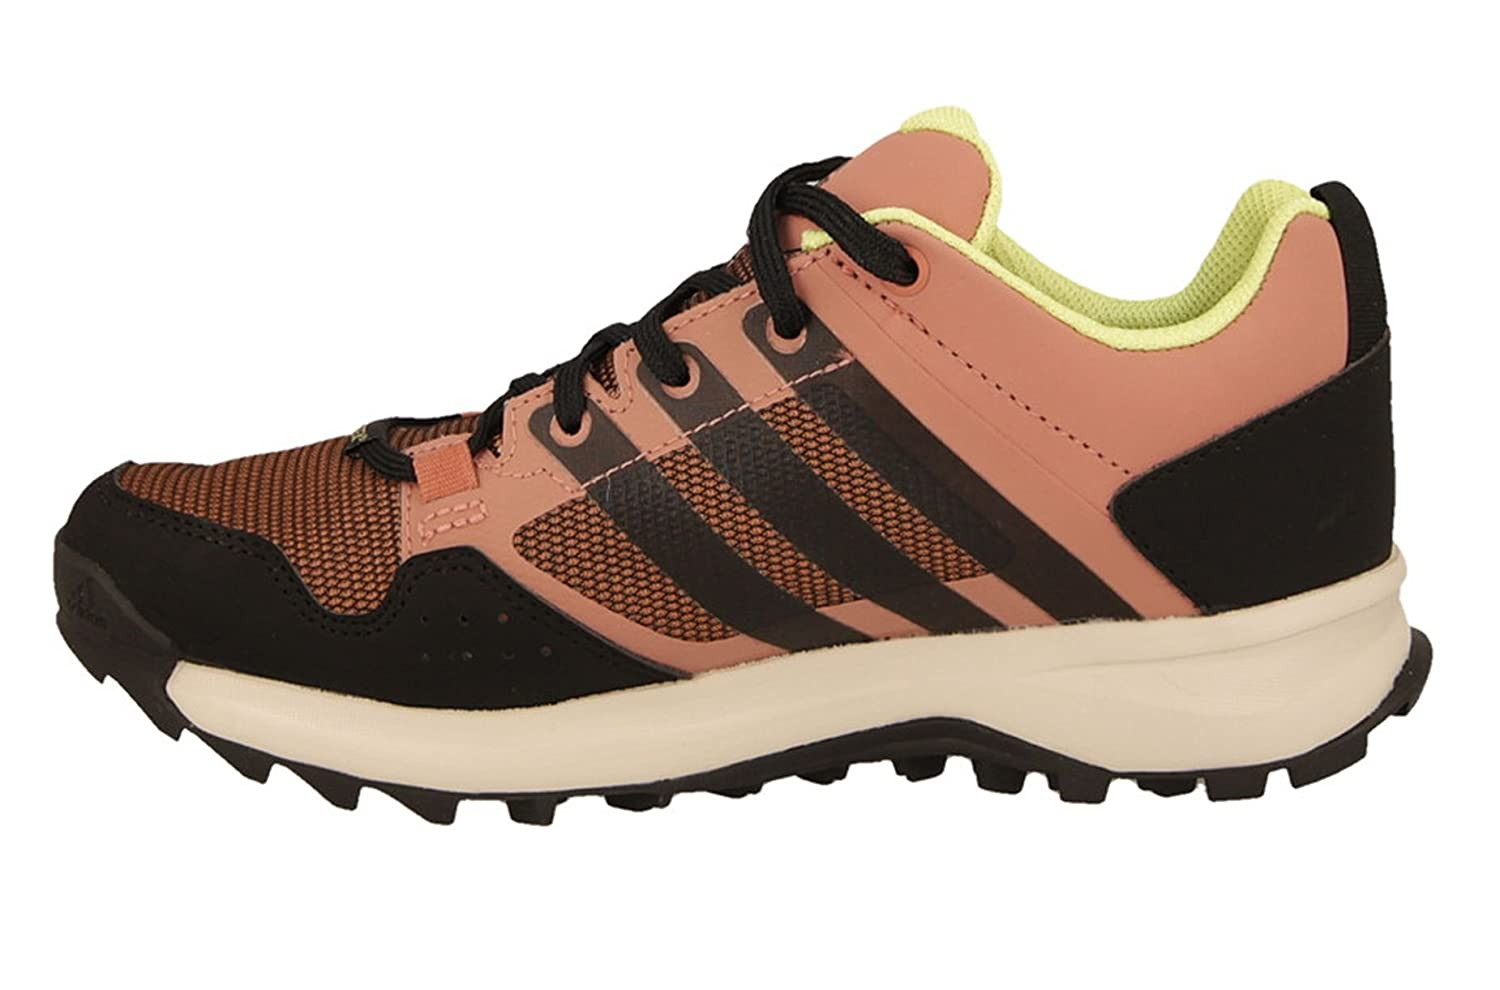 36 Kanadia Adidas Course Women's Trial Aw15 7 Gore Chaussure Tex fqF4z